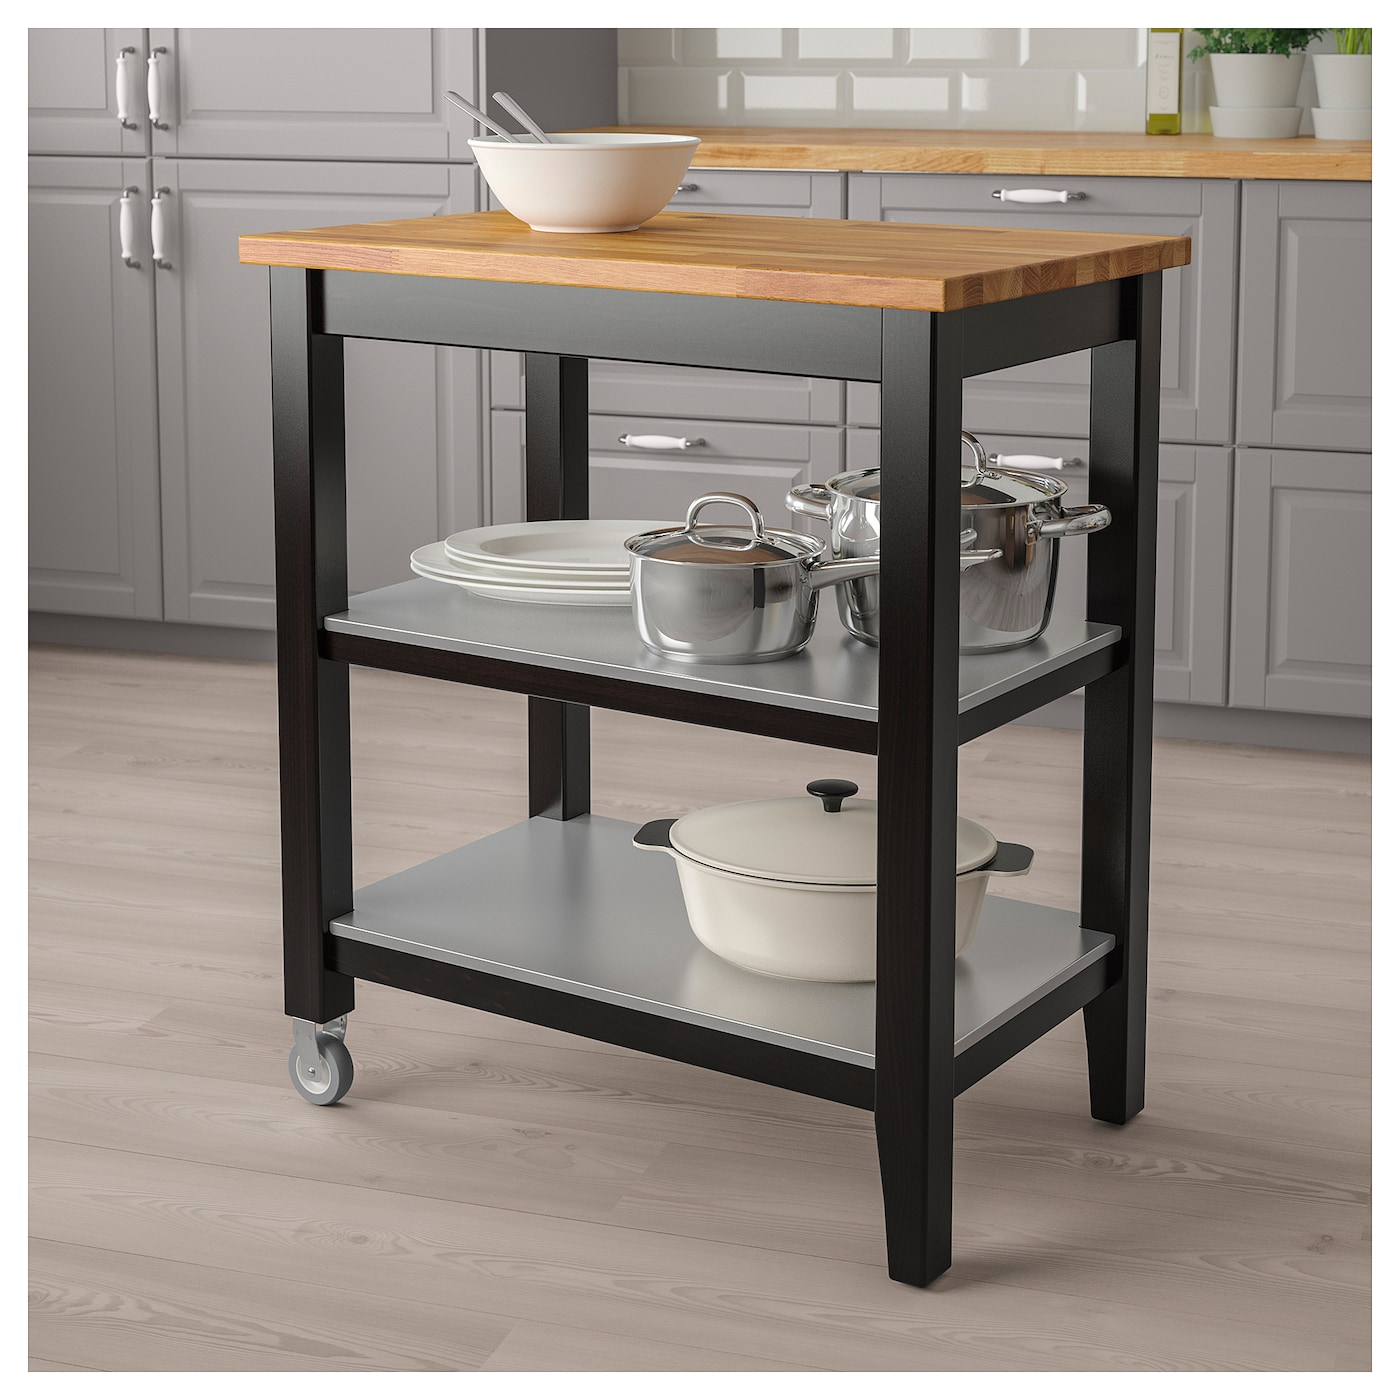 Amazing IKEA STENSTORP Kitchen Trolley Gives You Extra Storage In Your Kitchen.